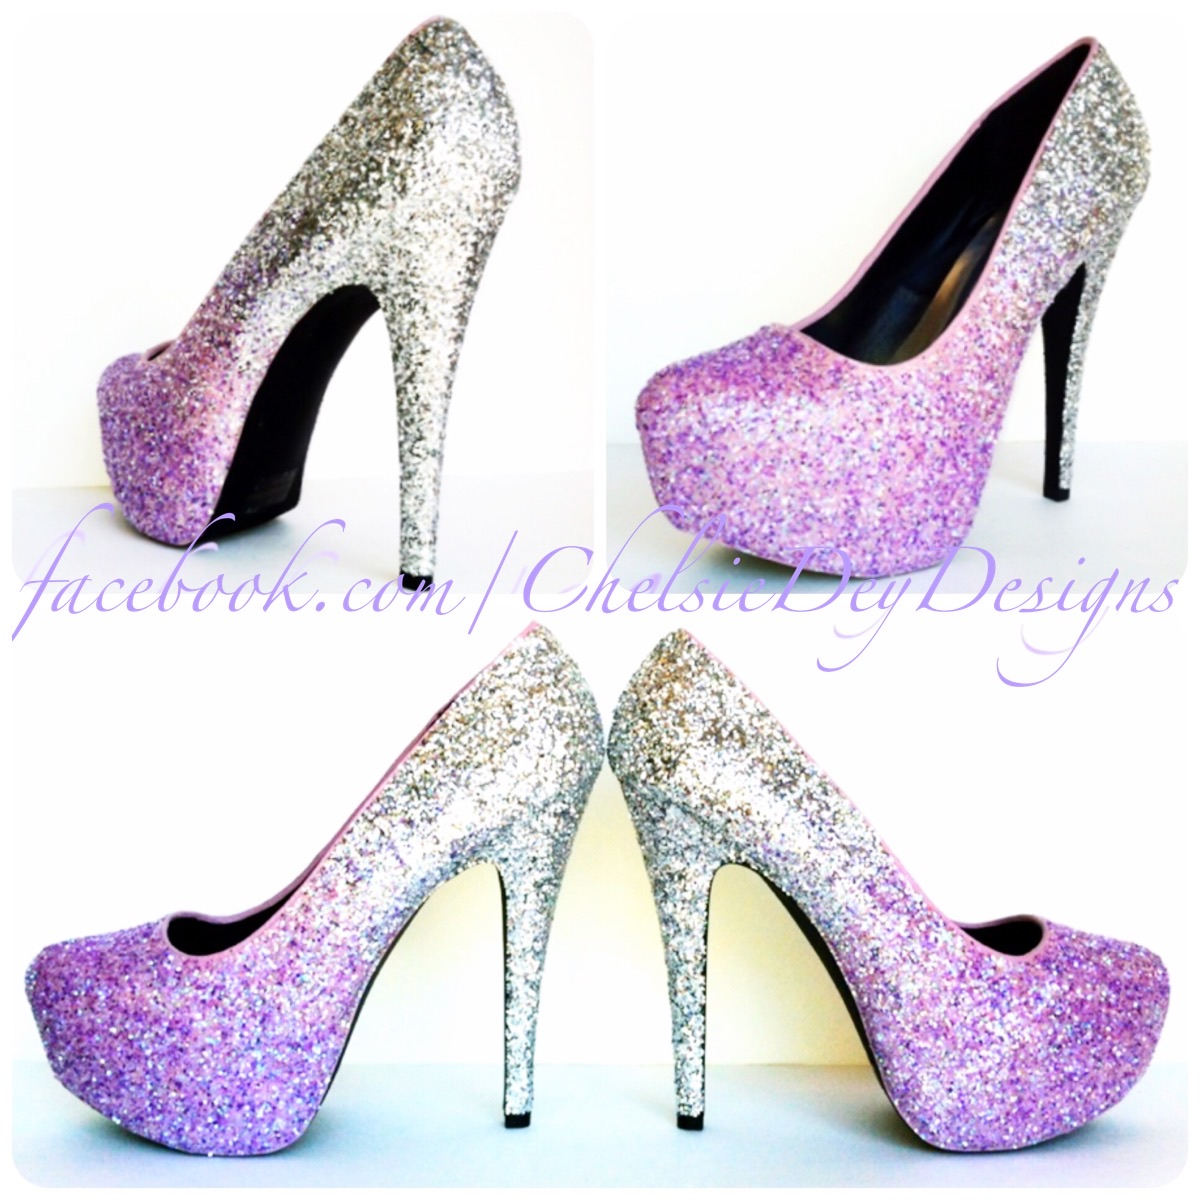 8fca4b107b08 Lilac Glitter High Heels - Purple Lavender Silver Ombre Pumps - Sparkly  Wedding Shoes - Platform Glitter Pumps on Storenvy